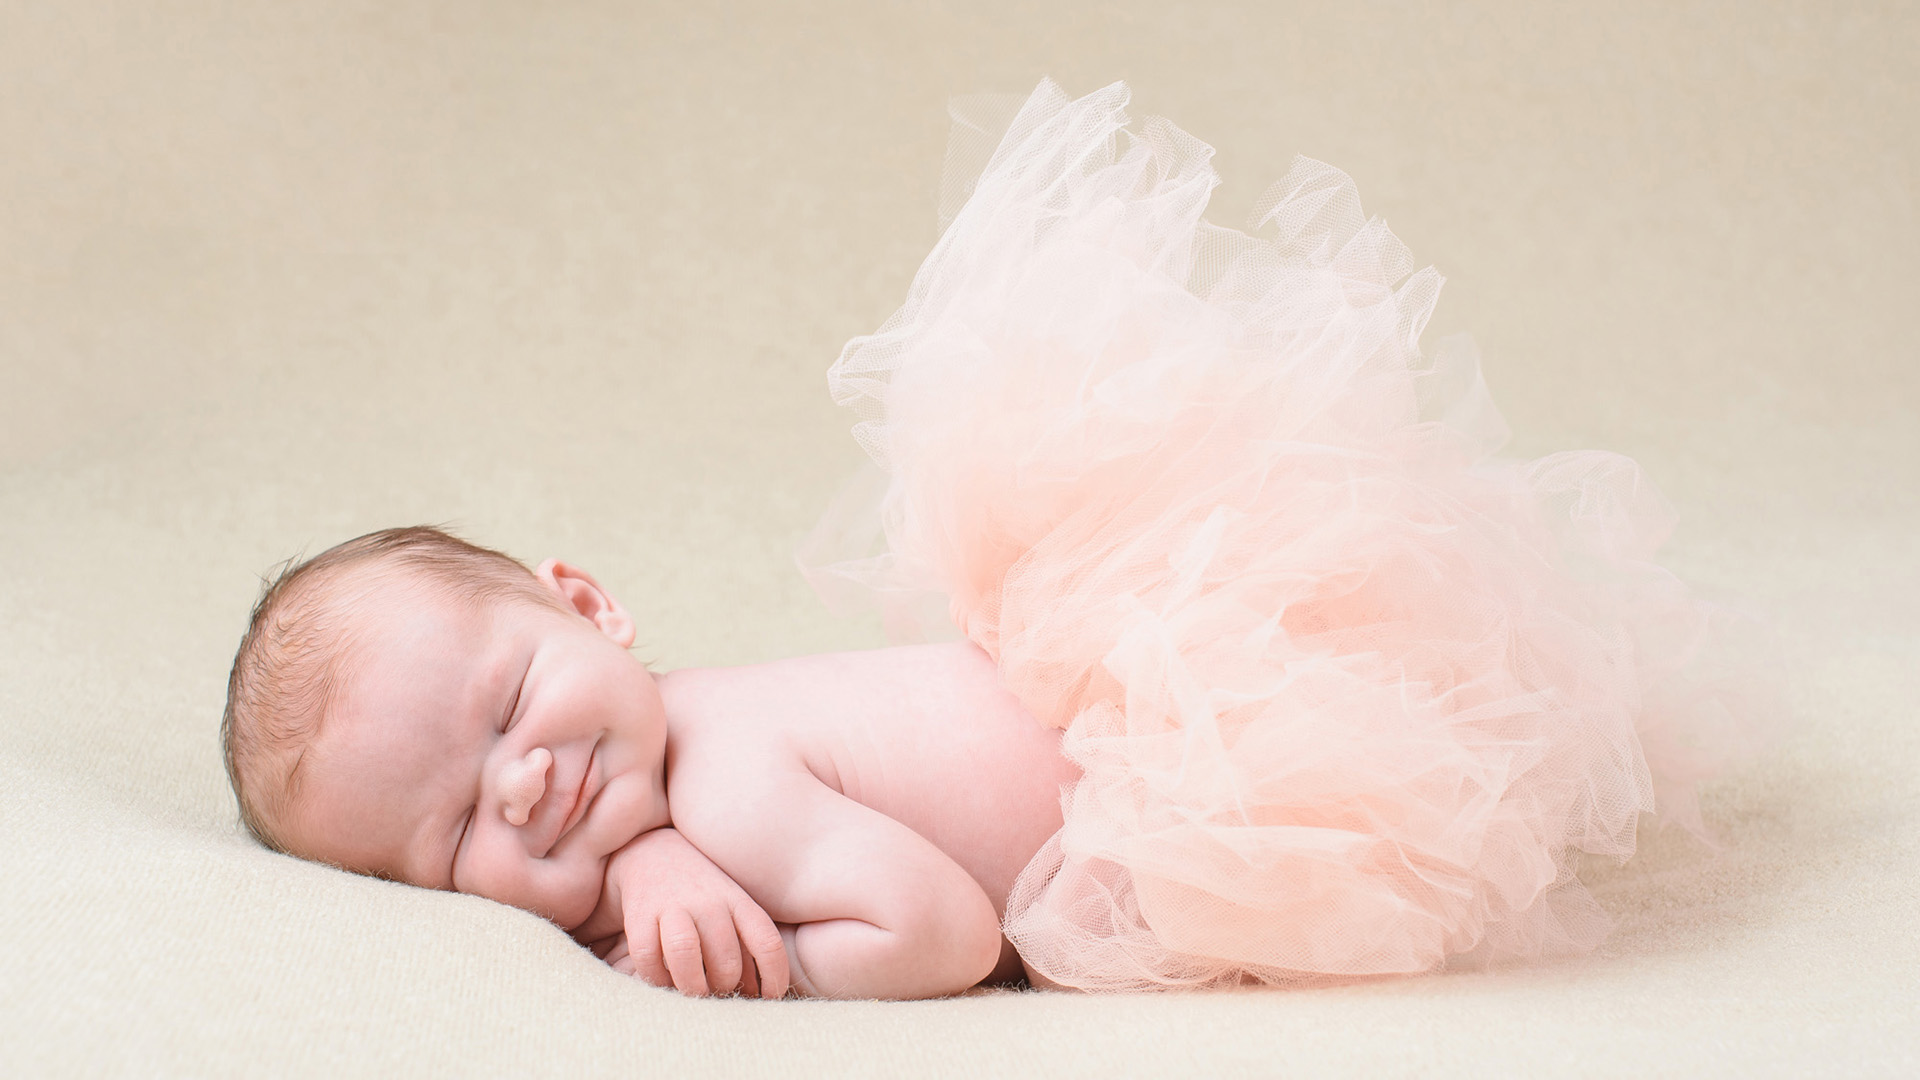 Smiling baby in a pink tutu